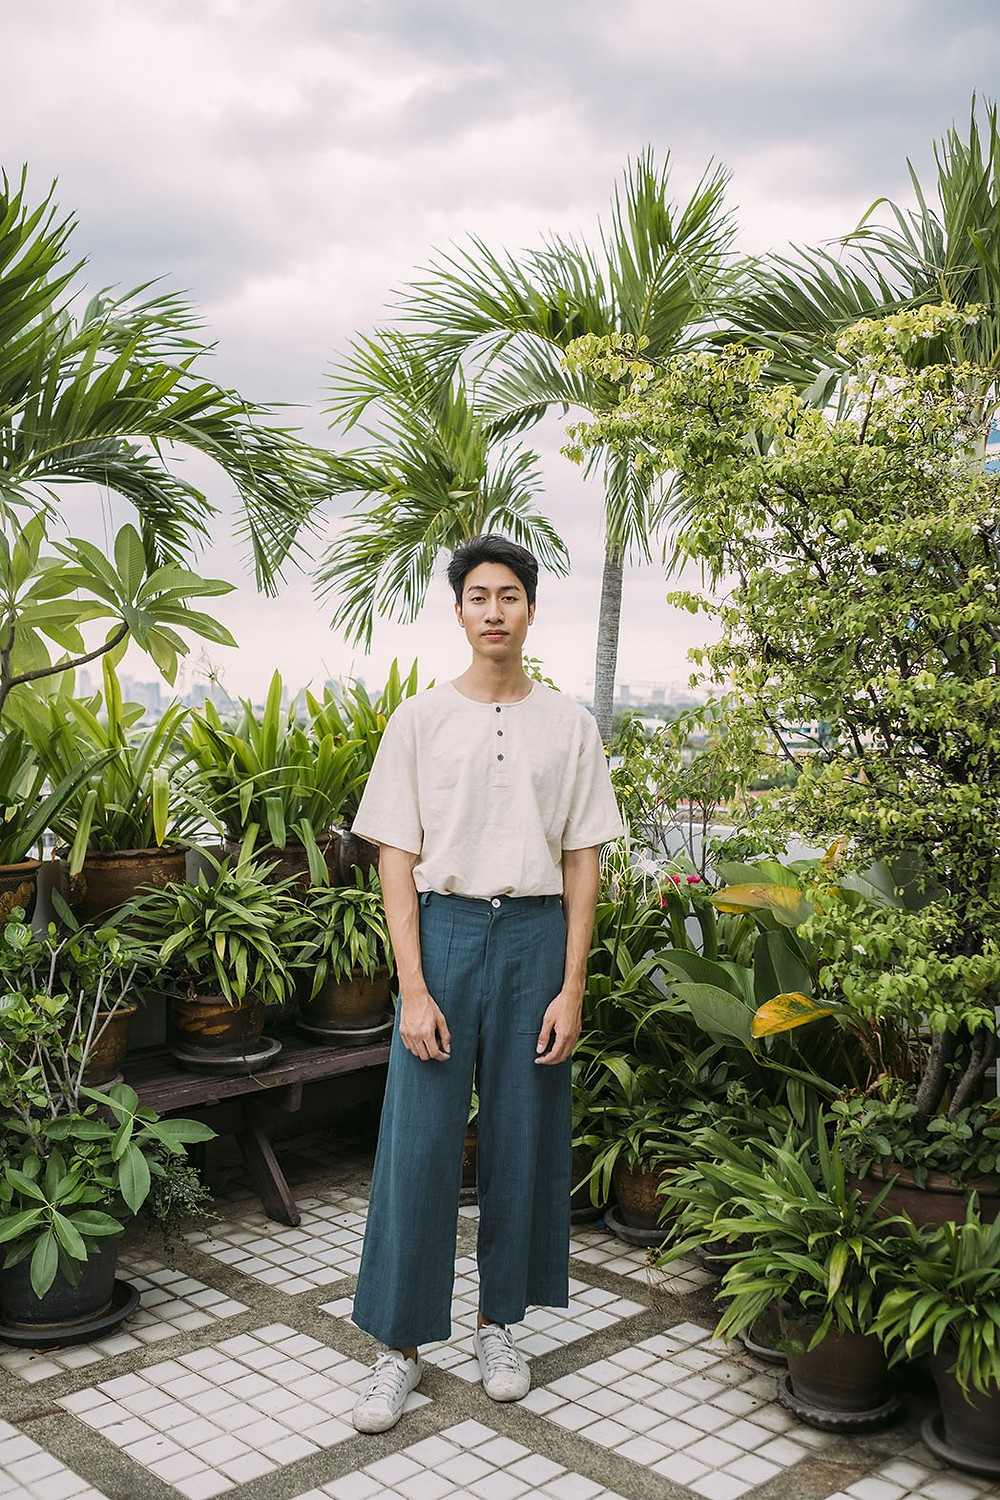 A guy standing against a green back drop of plants wearing green trousers and a white t-shirt tucked in